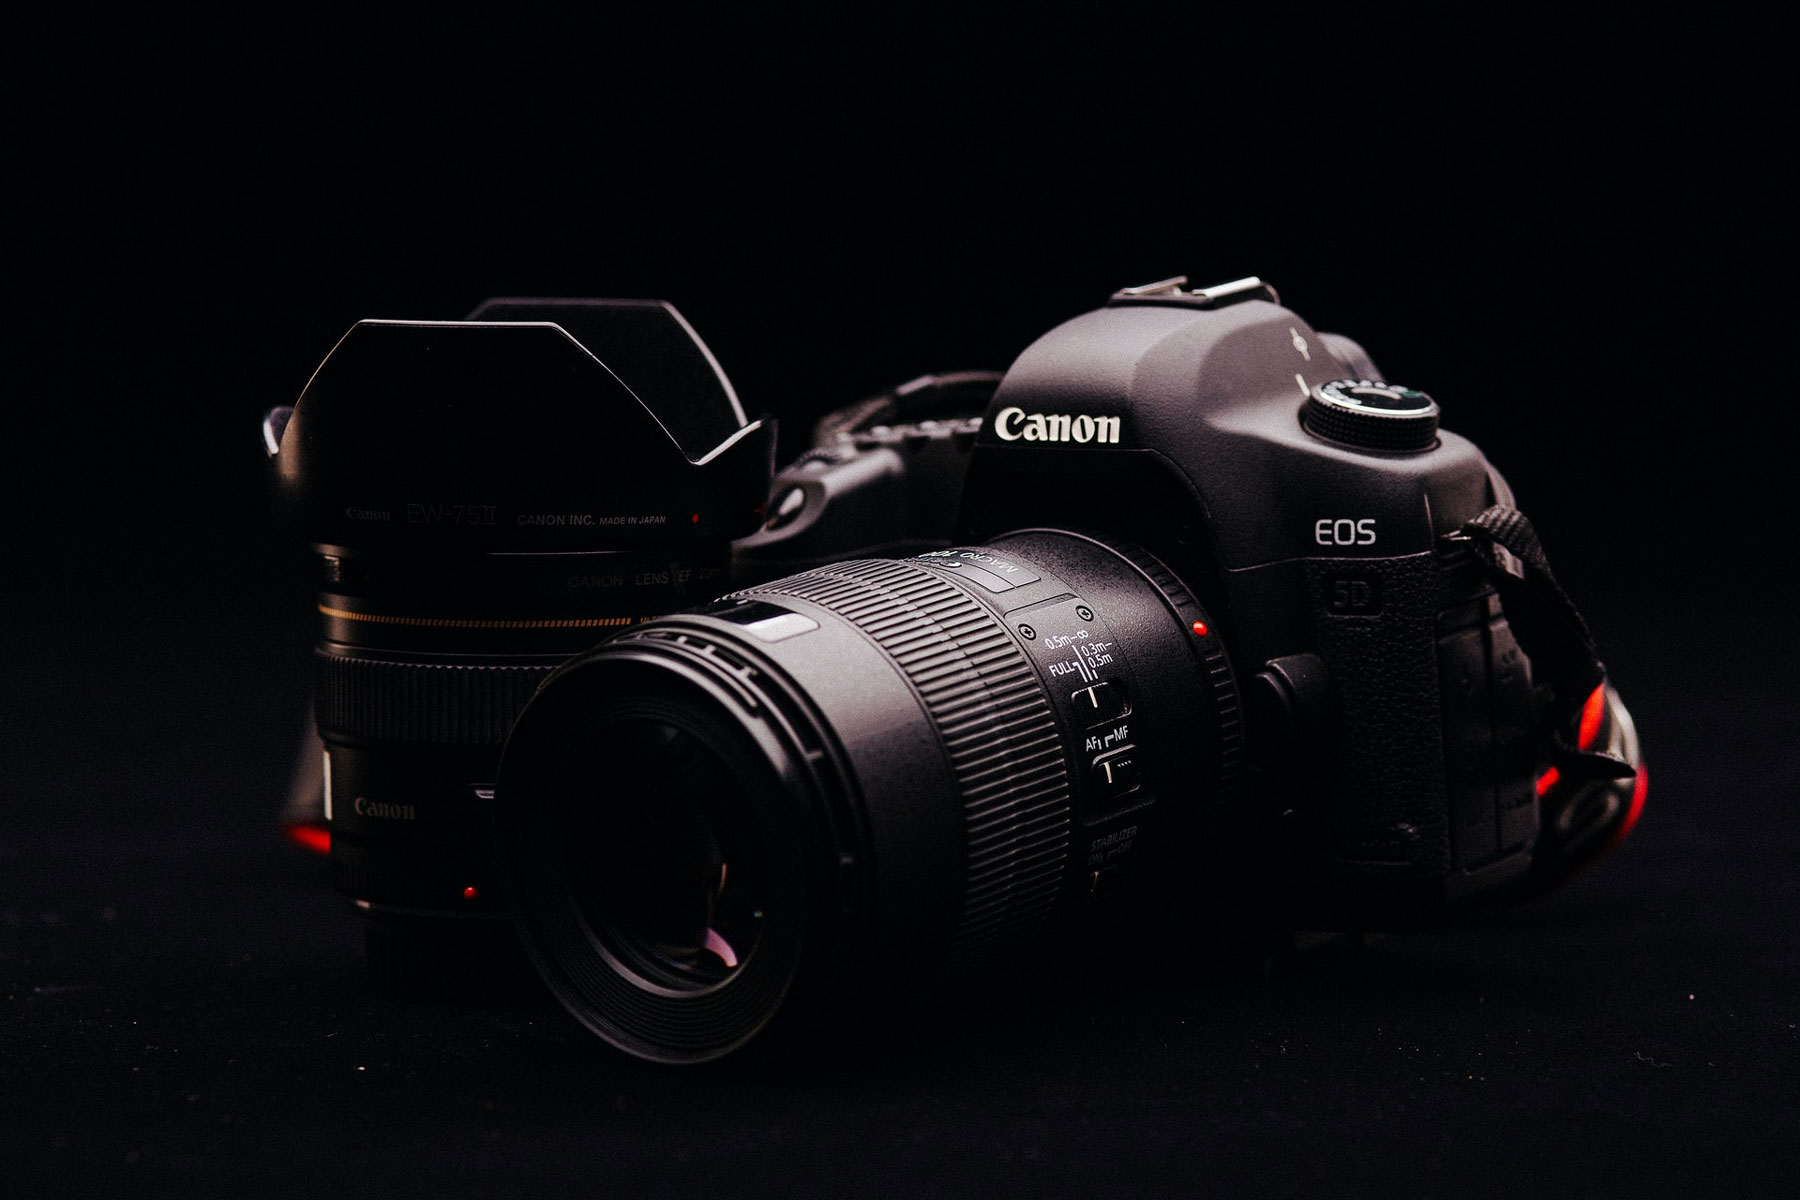 Image of a black Canon camera and lenses against a black backdrop